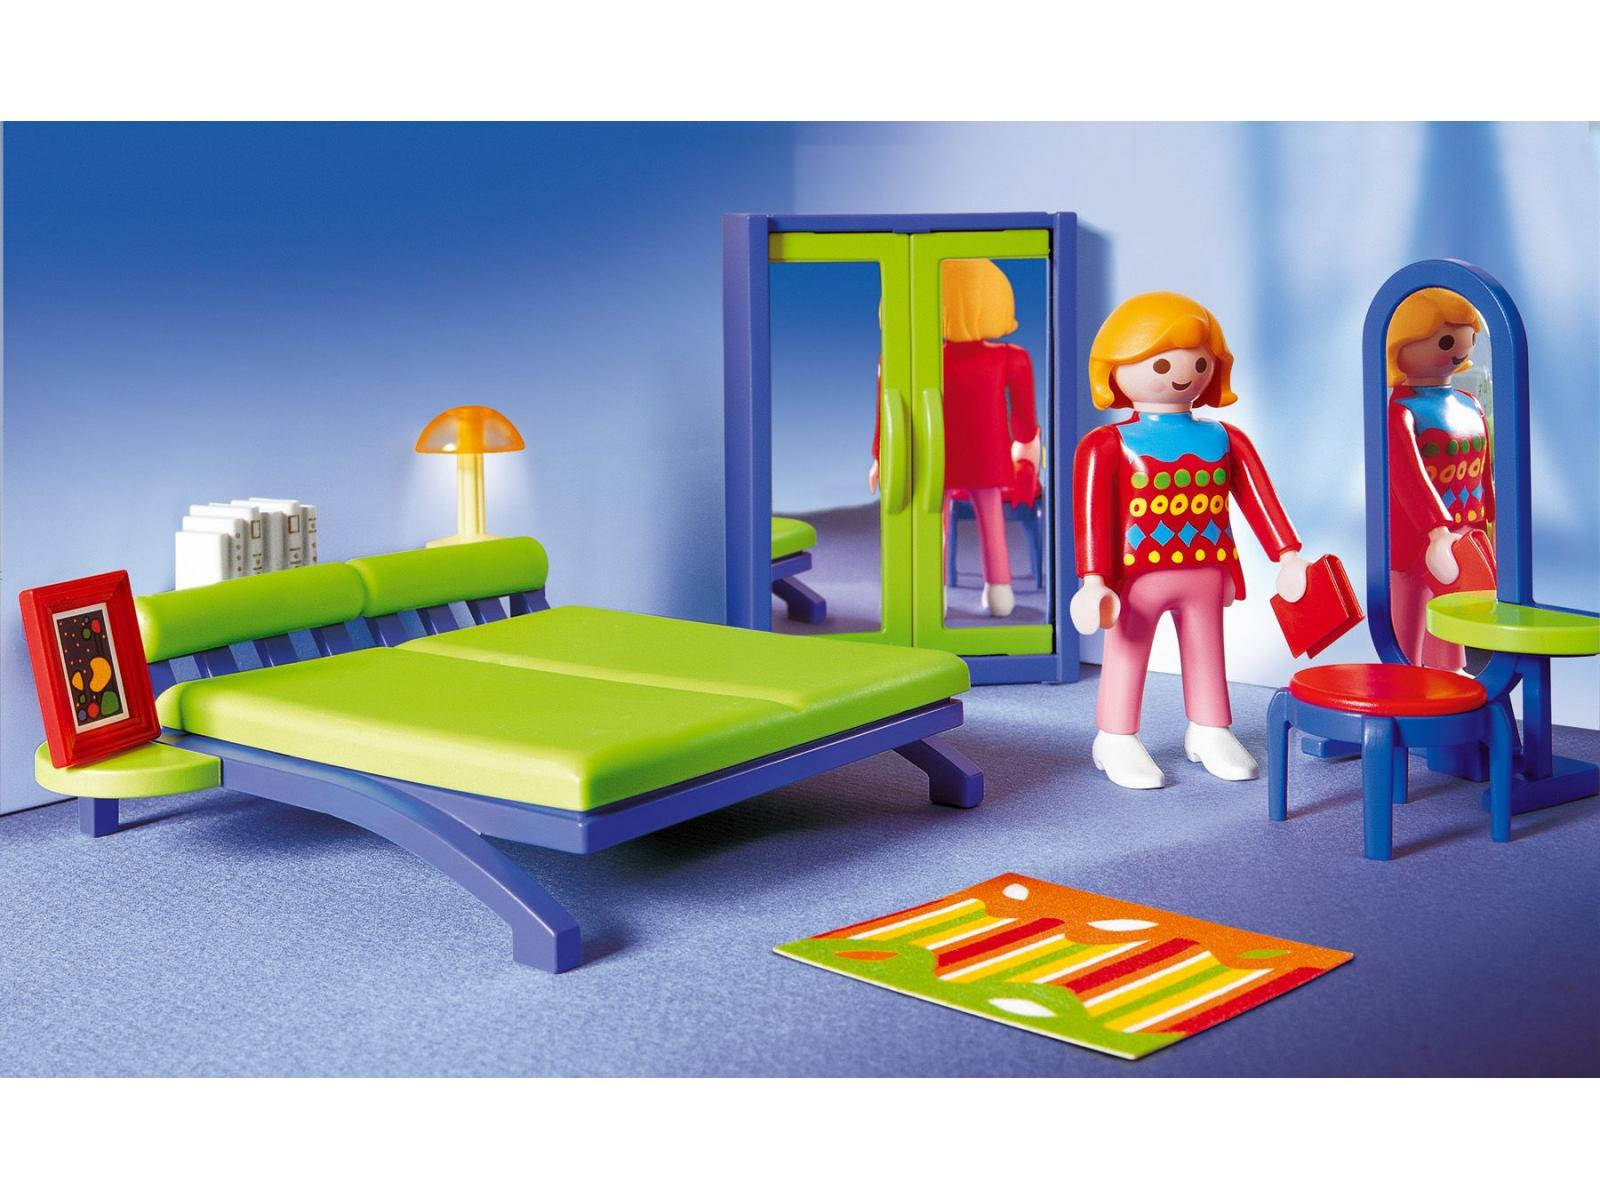 Playmobil maman avec chambre moderne - Chambre parents playmobil ...